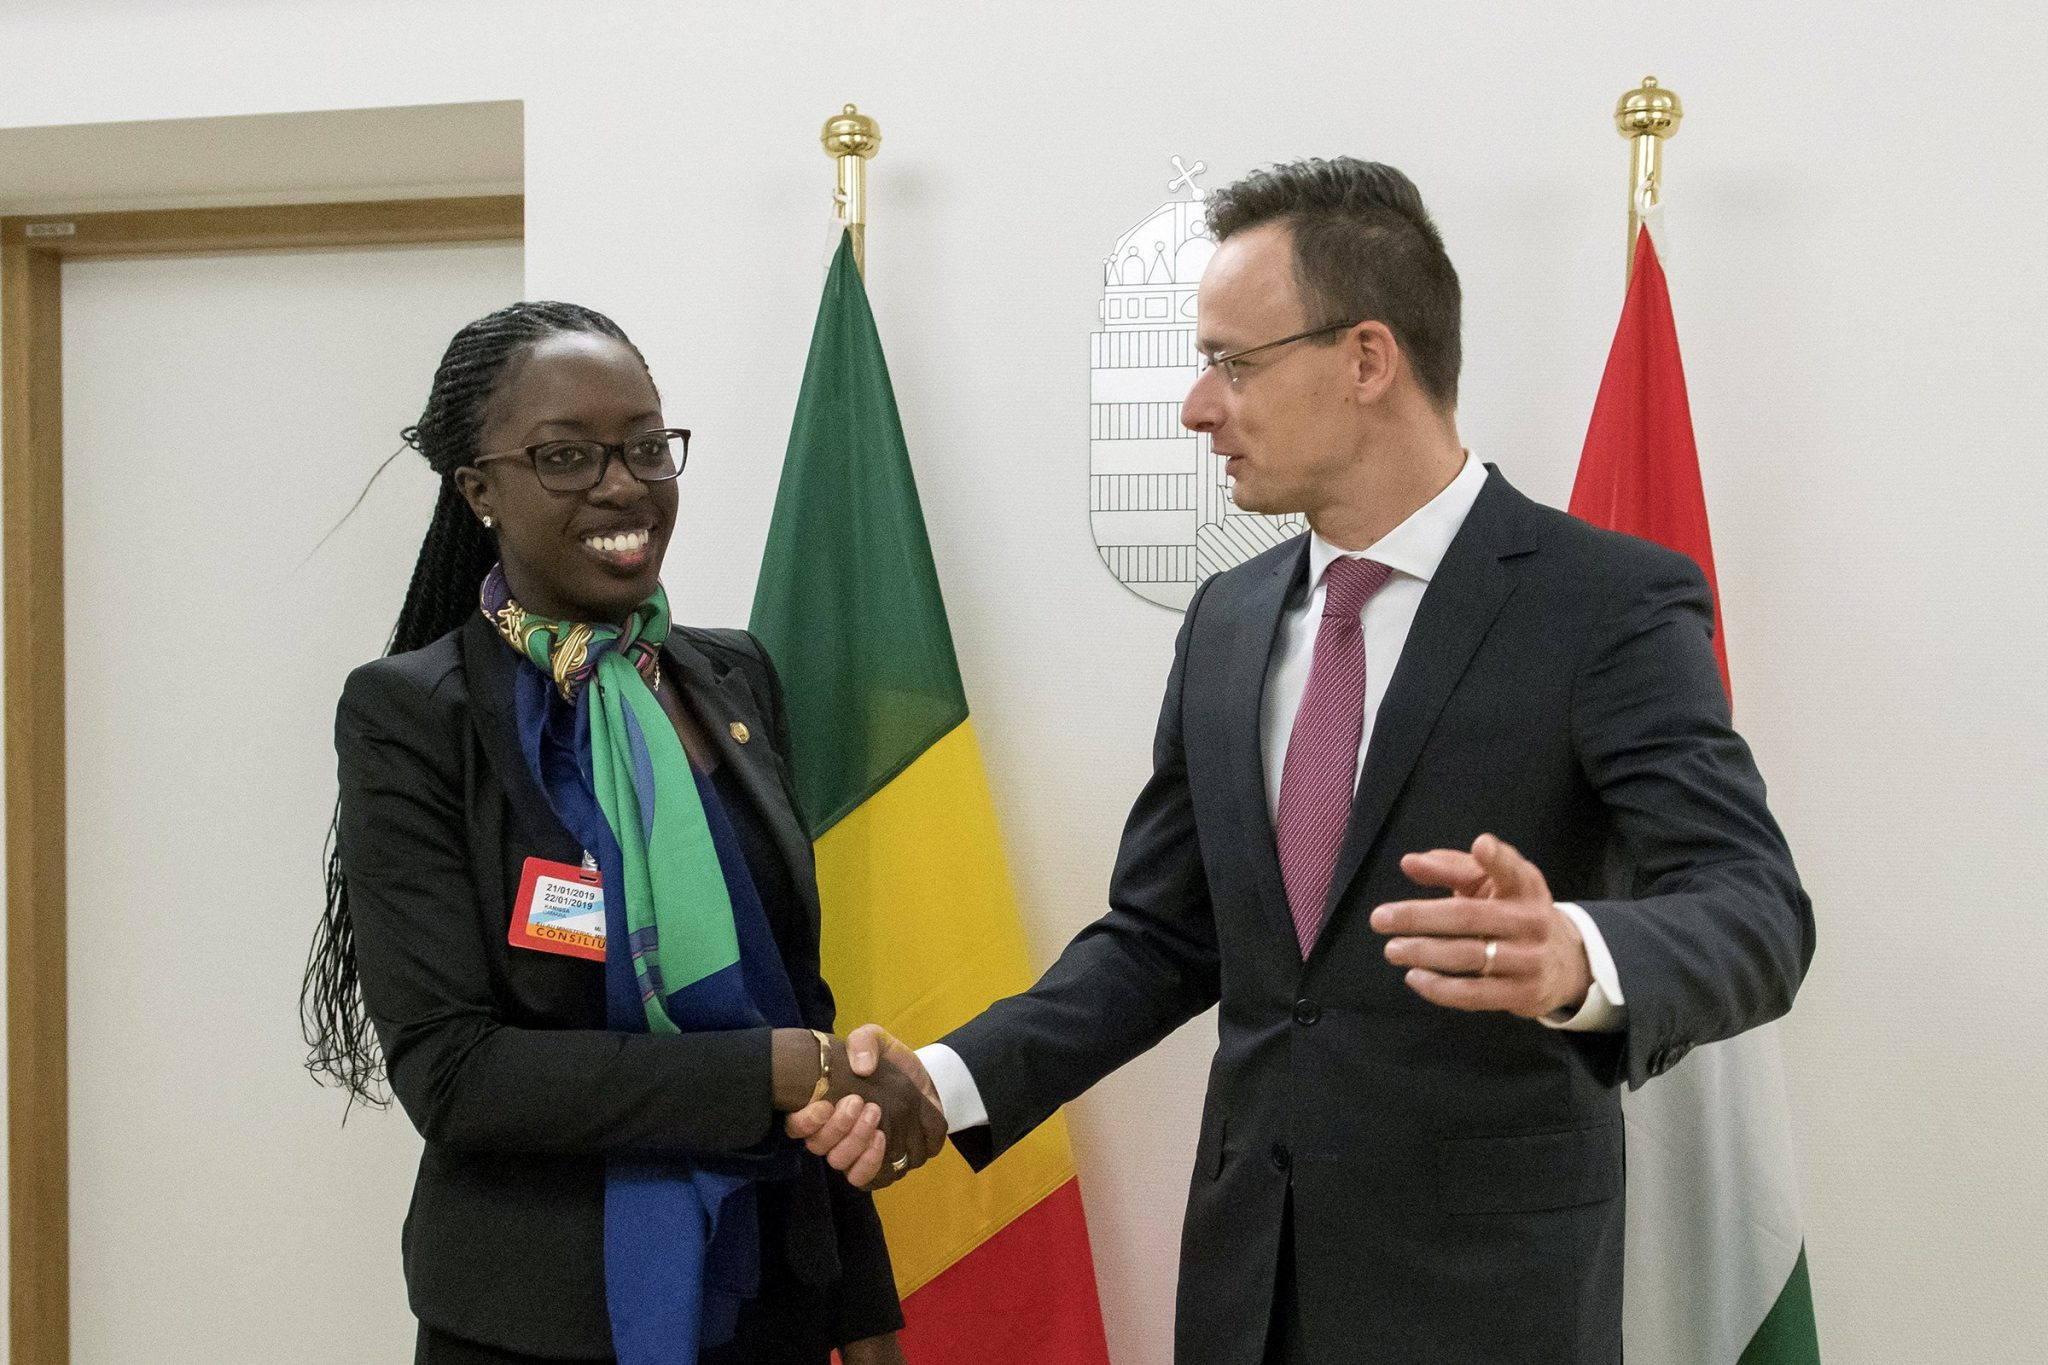 Mali Hungary foreign ministers